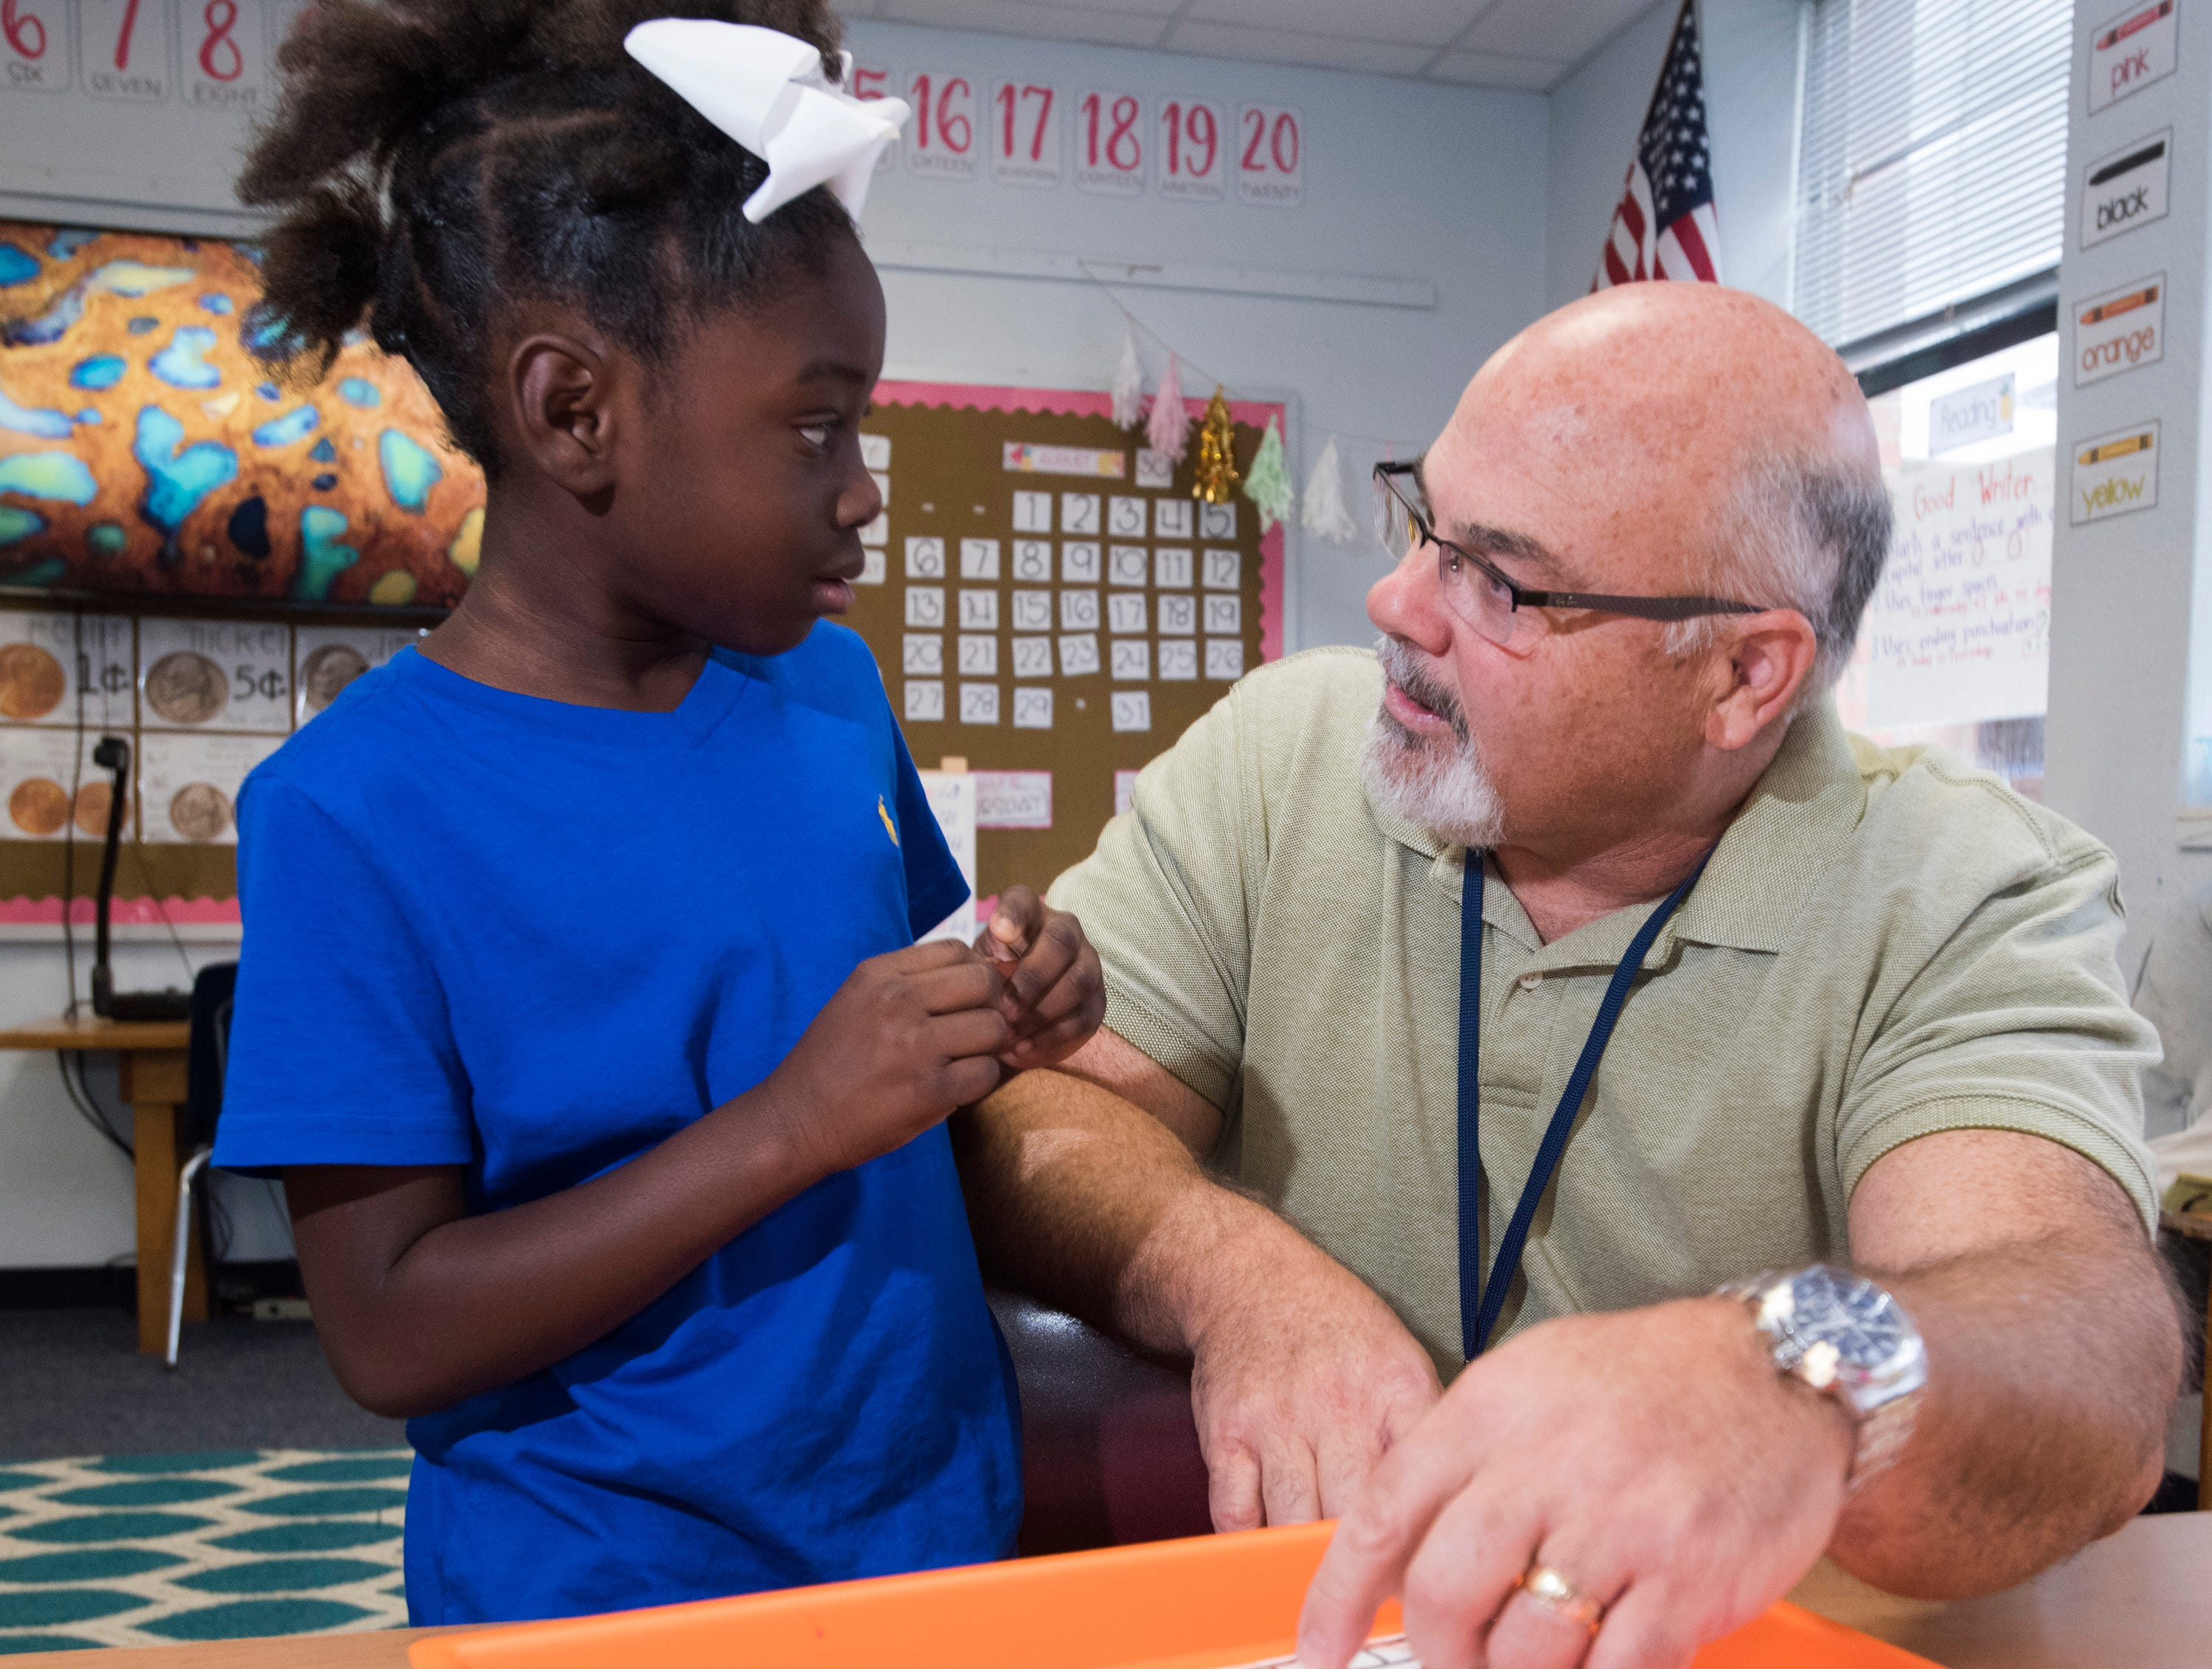 Warrington Elementary School's new principal once served in the U.S. Marine Corps